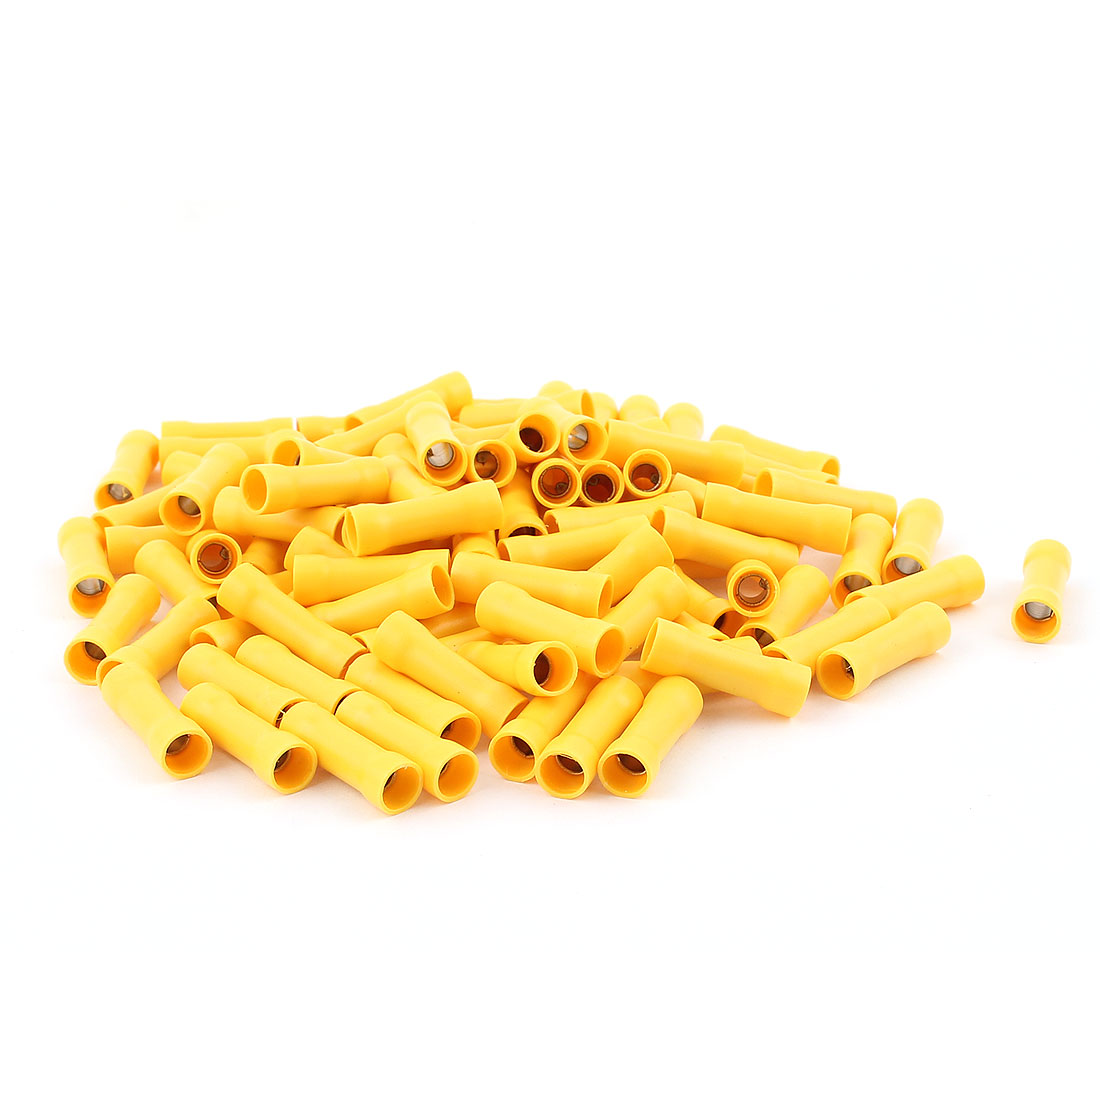 110pcs Dual Ends Yellow Plastic Sleeve Pre Insulated Female Crimp Wiring Terminal Cable Connector for AWG12-10